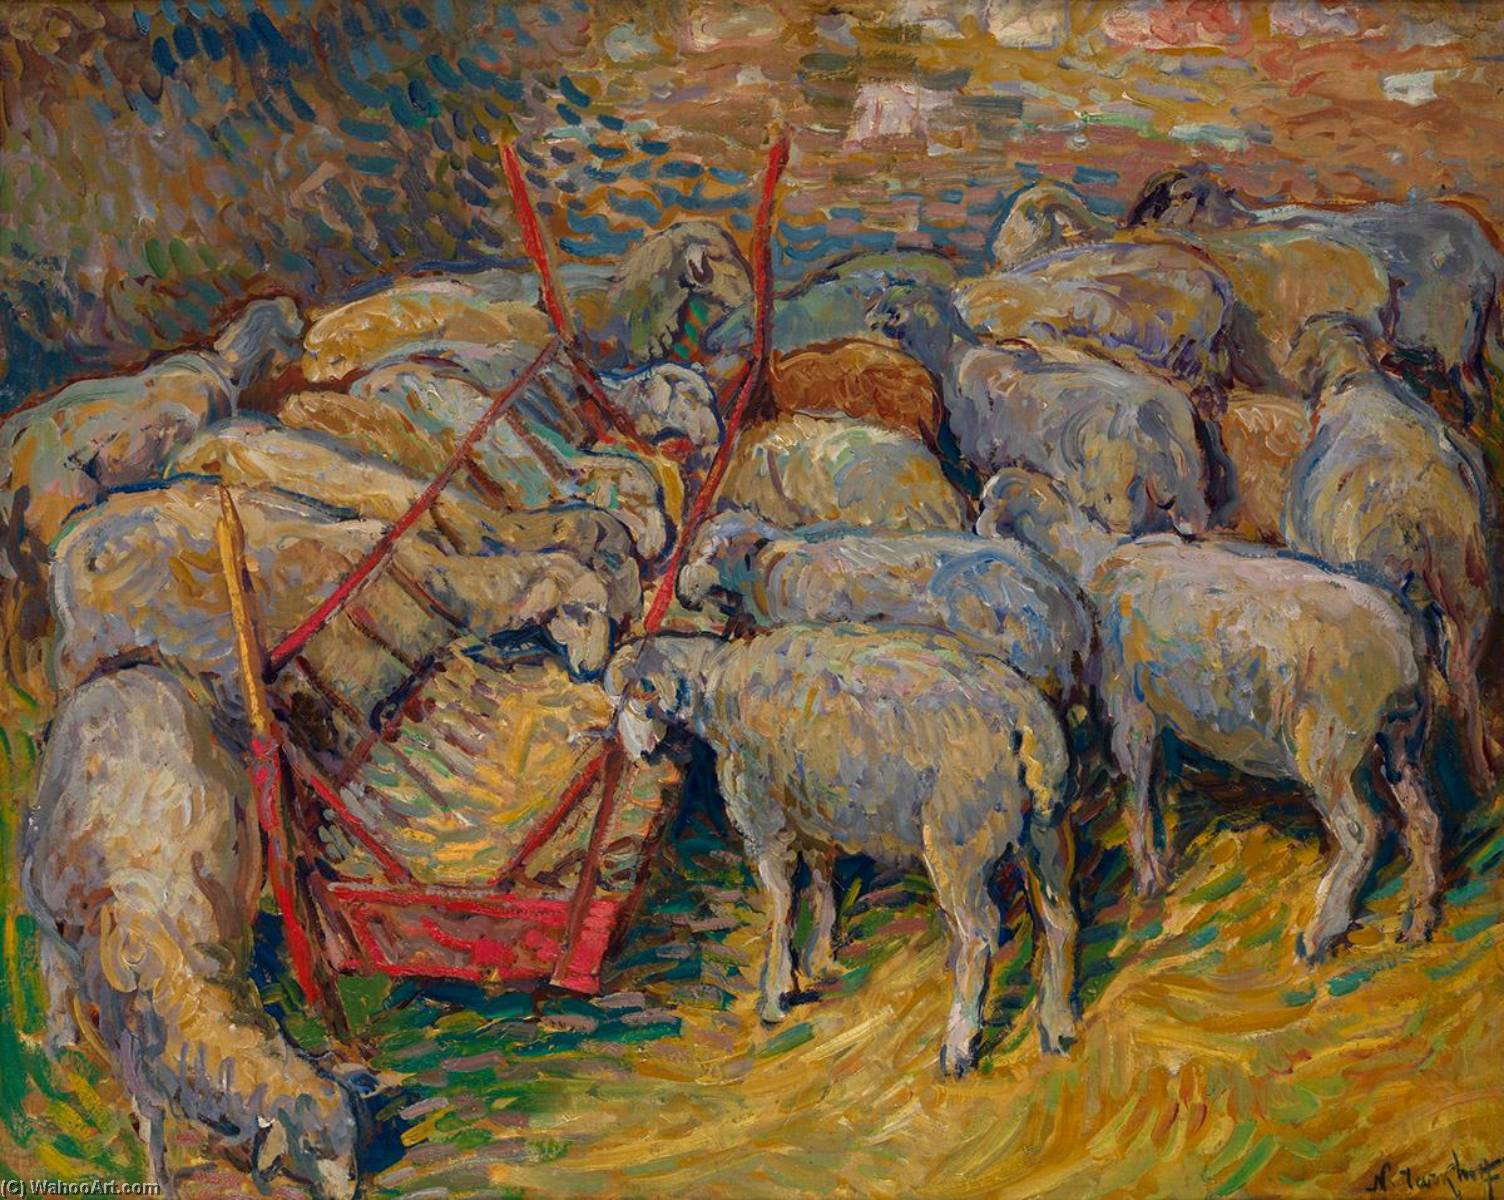 Les Moutons, Oil On Panel by Nicolas Tarkhoff (1871-1930)